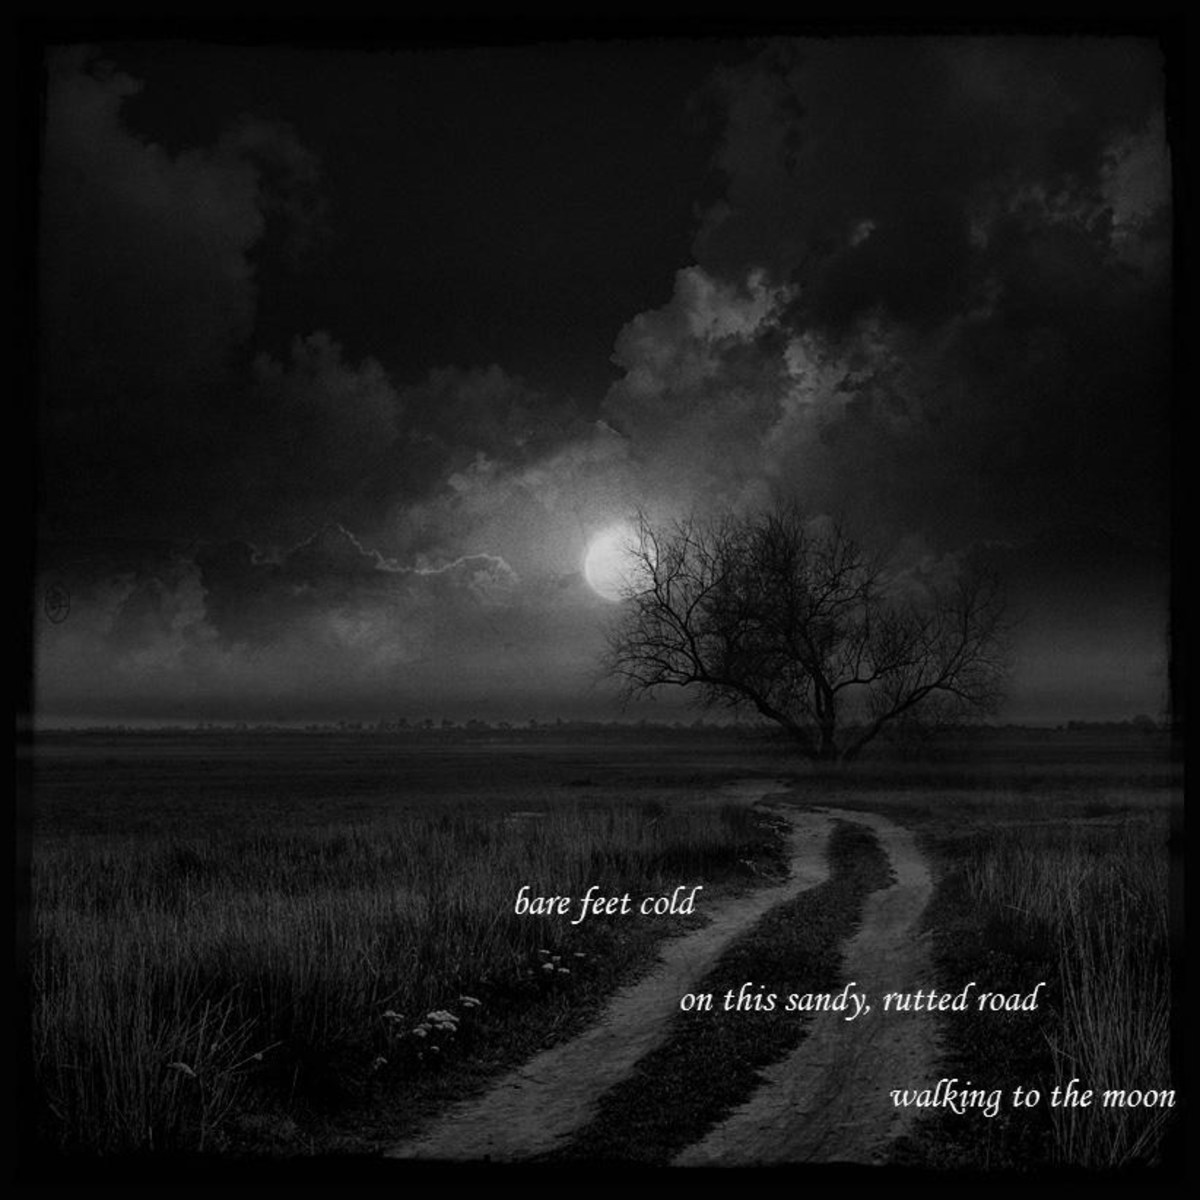 Bare feet cold ~ on this sandy rutted road ~ walking to the moon